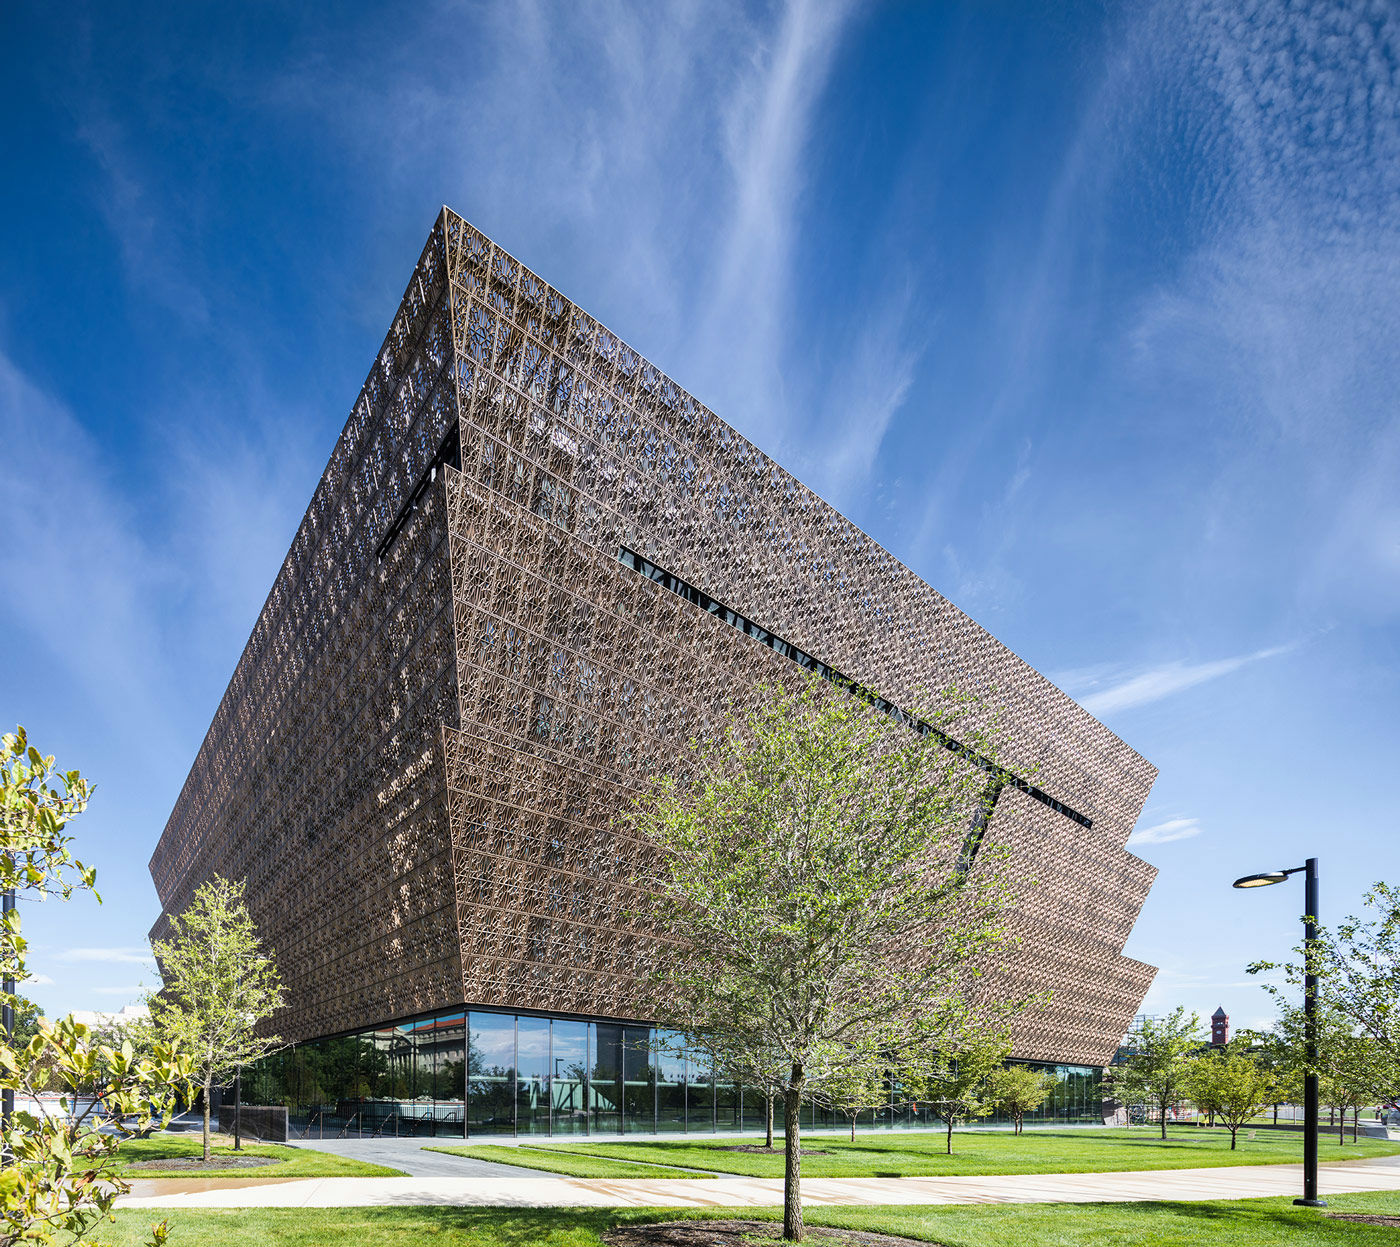 Seven Really Cool New Museums And Monuments In The USA In - Best history museums in usa